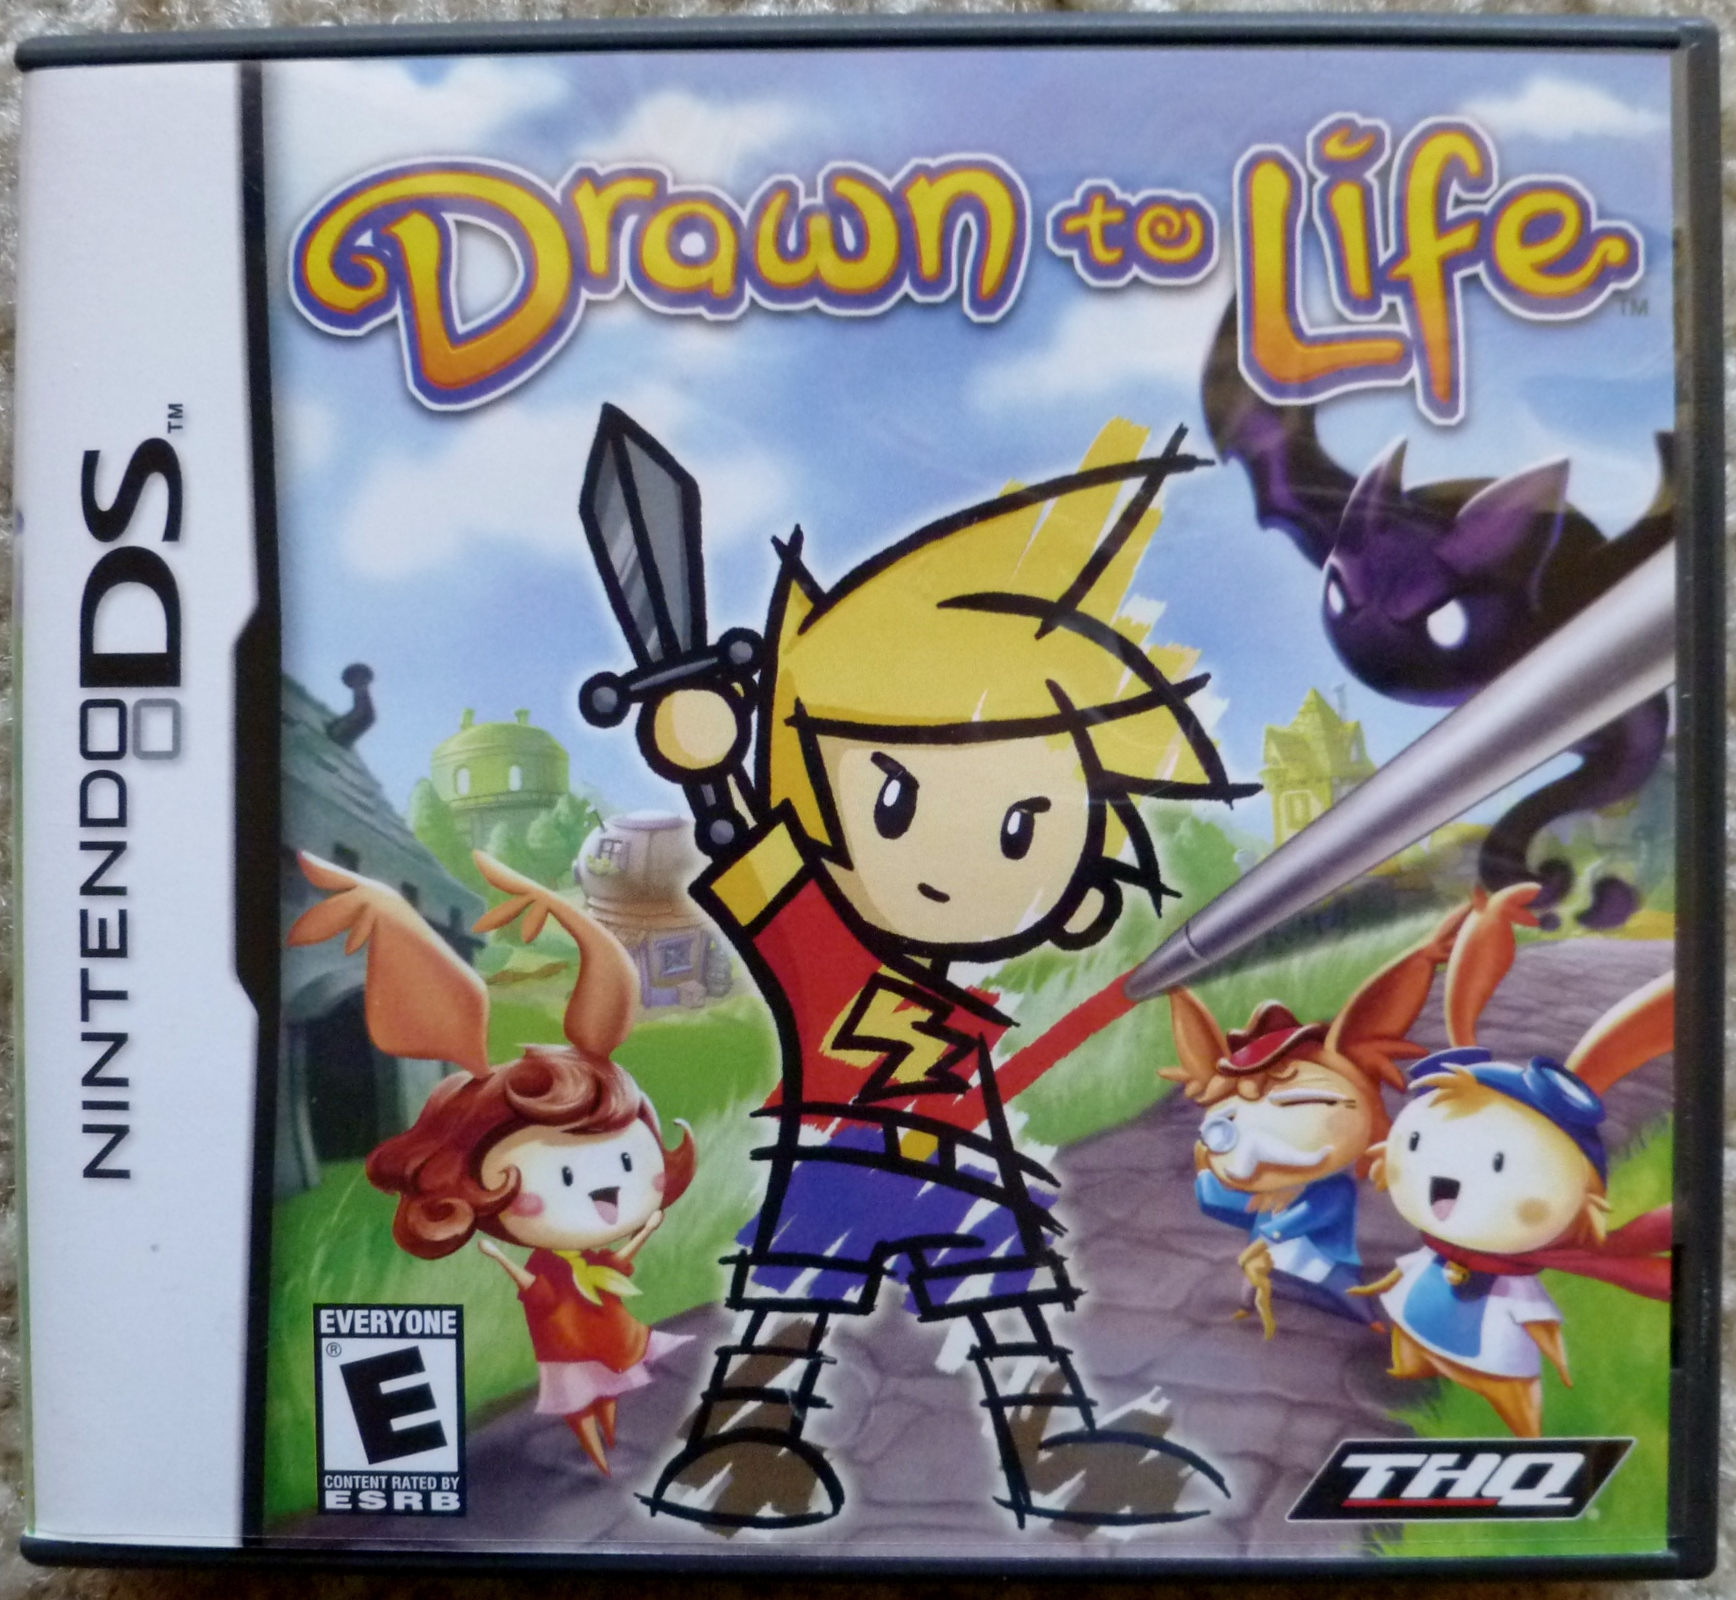 Drawn to Life Cover